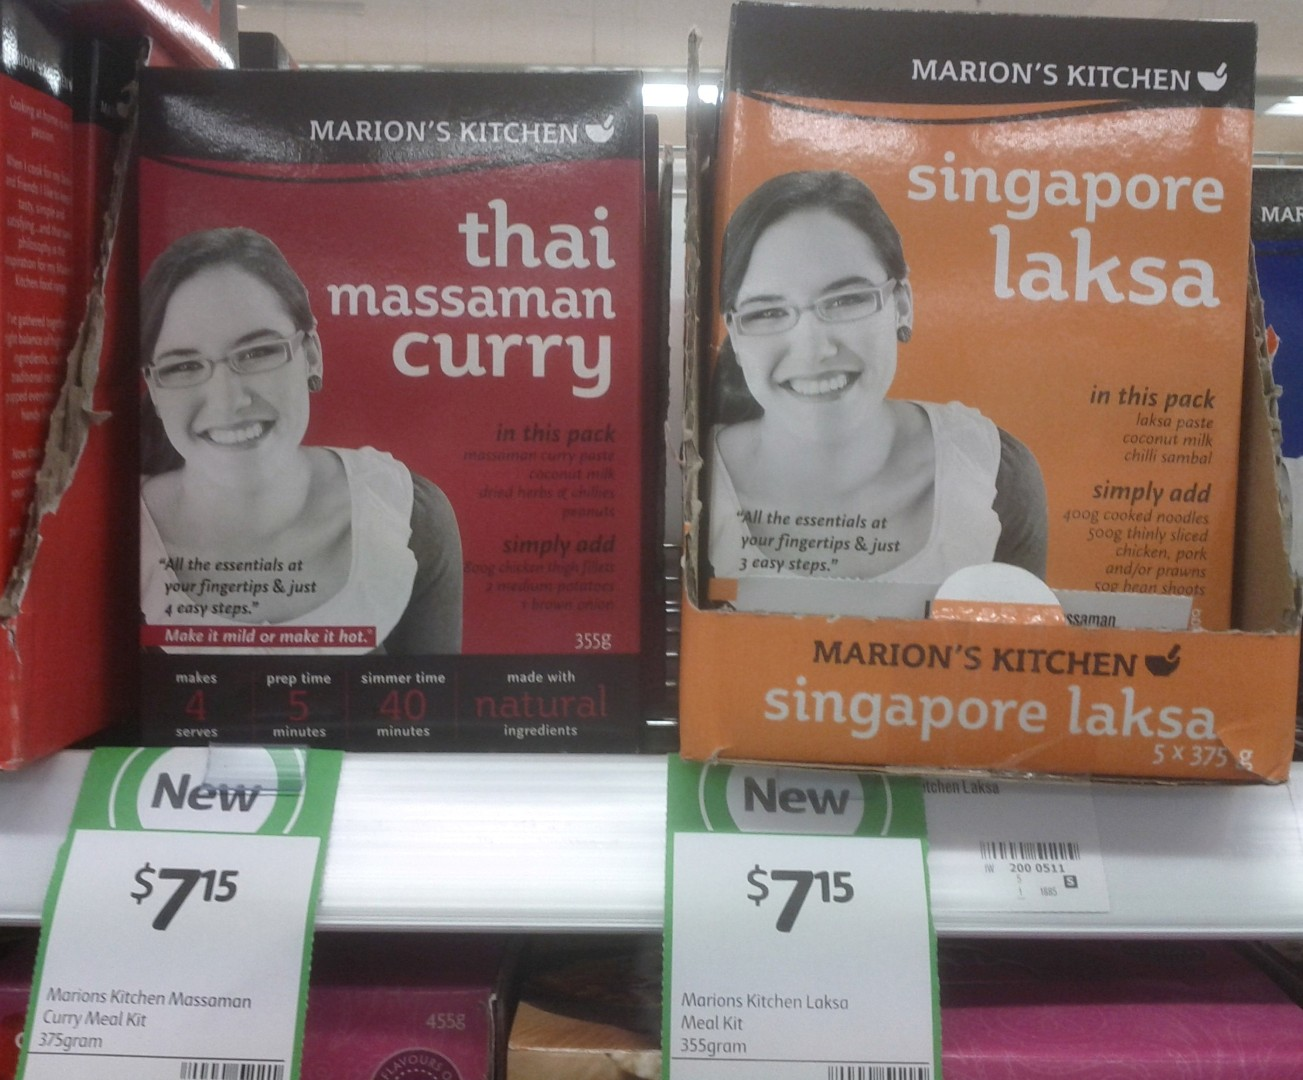 Marion's Kitchen 375g Thai Massamon Curry, 355g Laksa